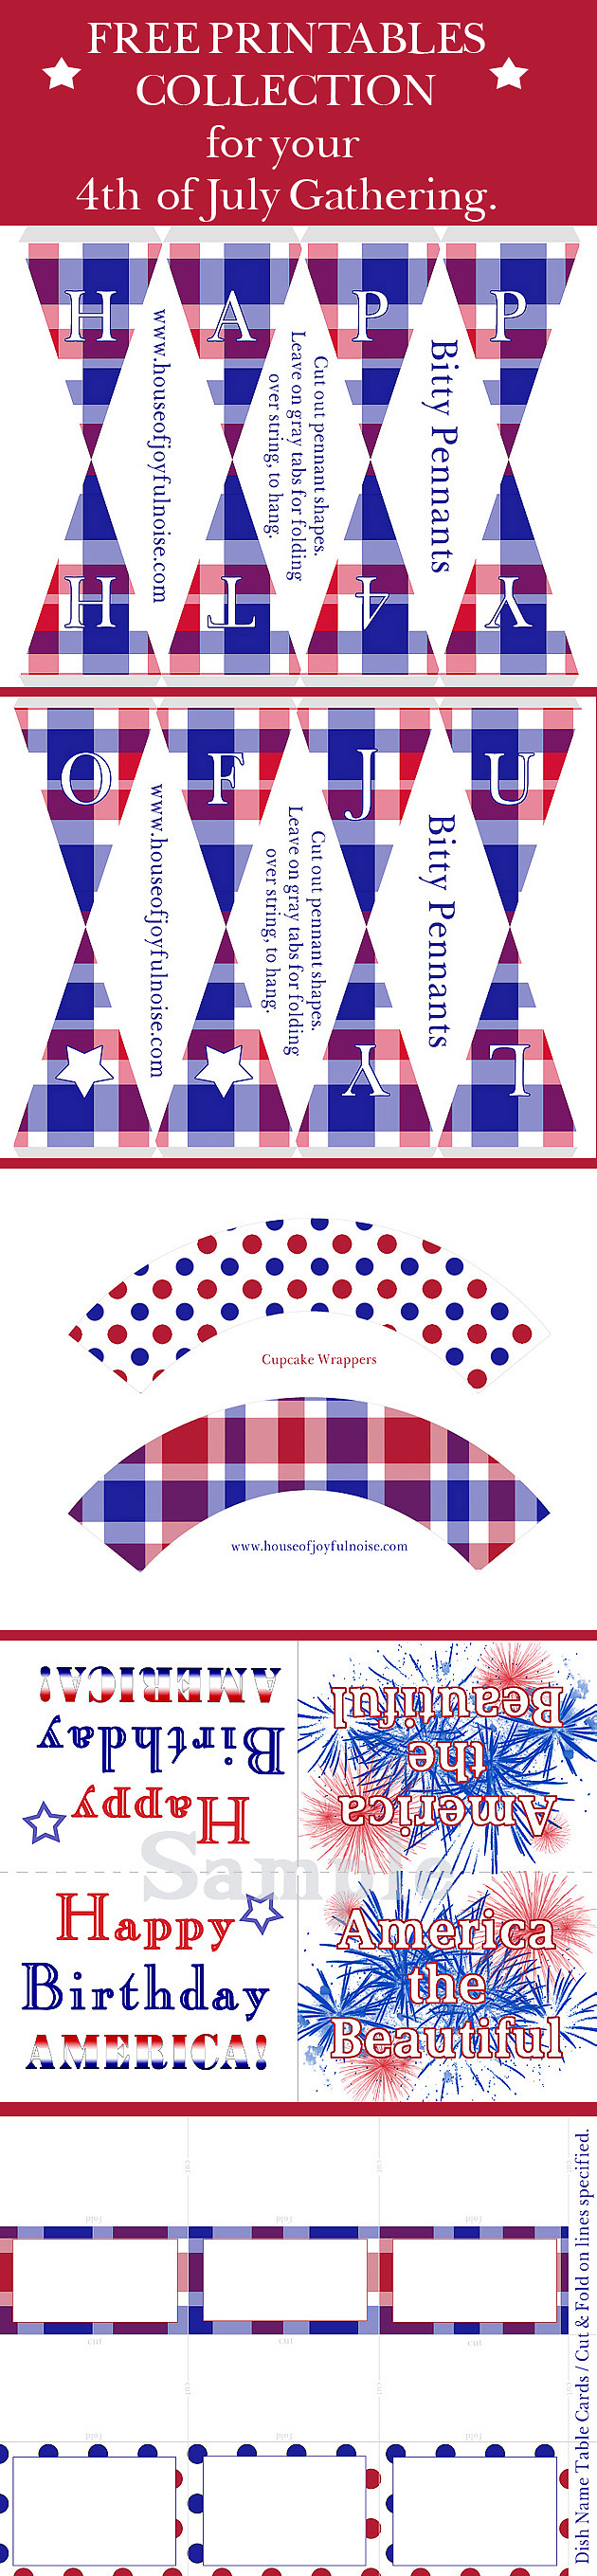 4th-fourth-of-july-free-printables